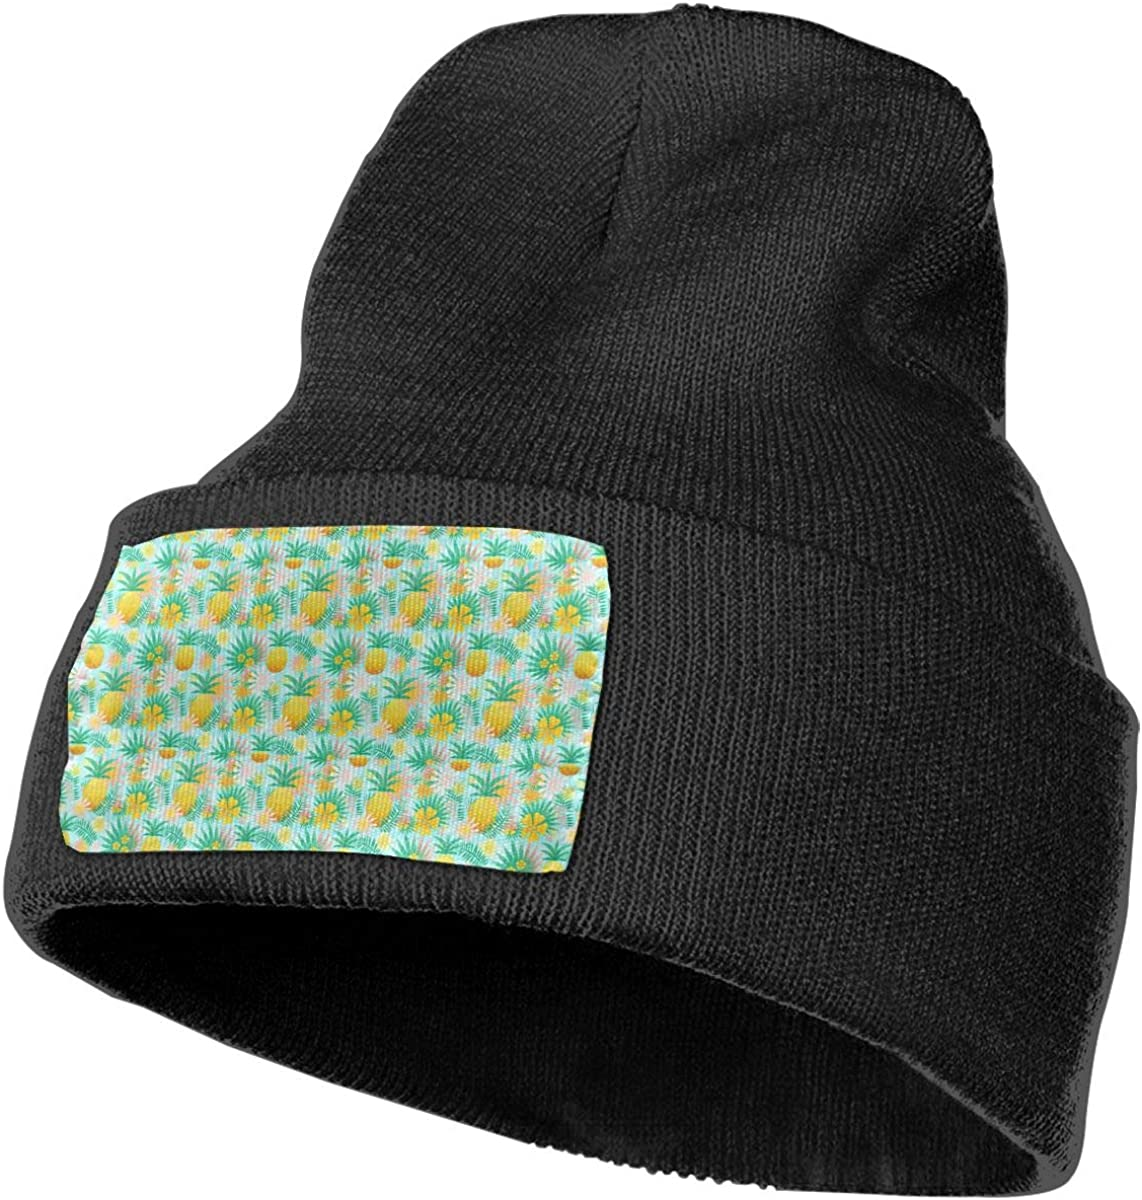 TAOMAP89 Seamless Pine Men /& Women Skull Caps Winter Warm Stretchy Knitting Beanie Hats